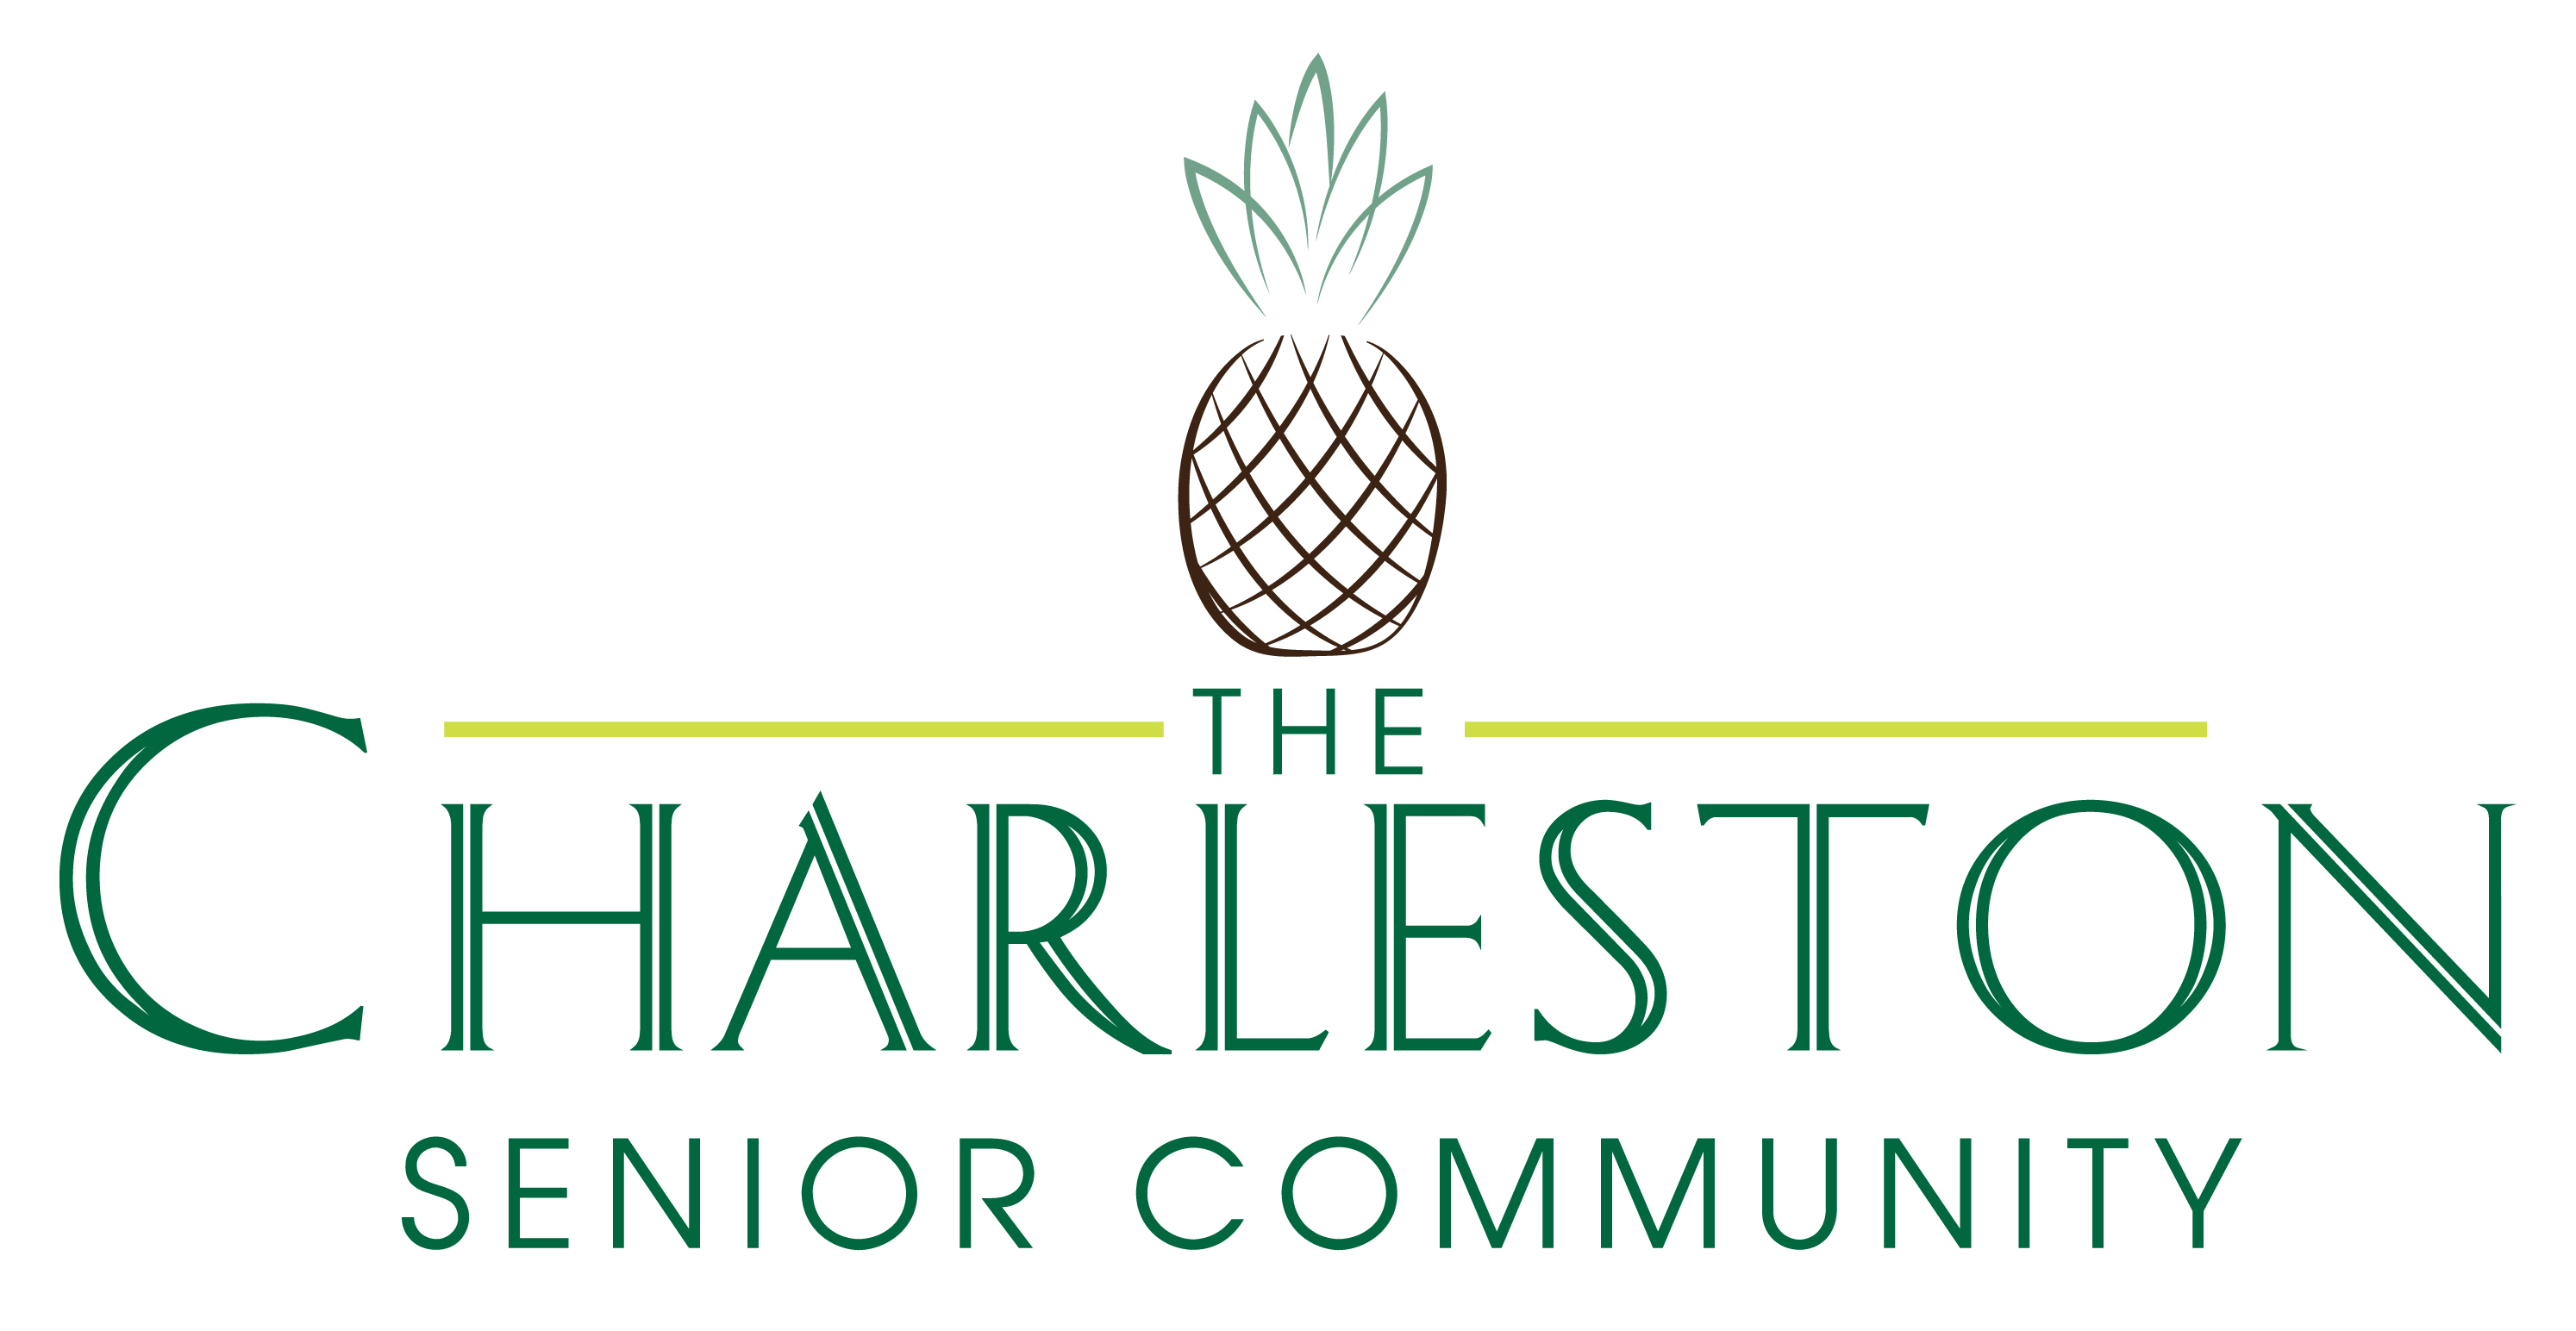 The Charleston Senior Community